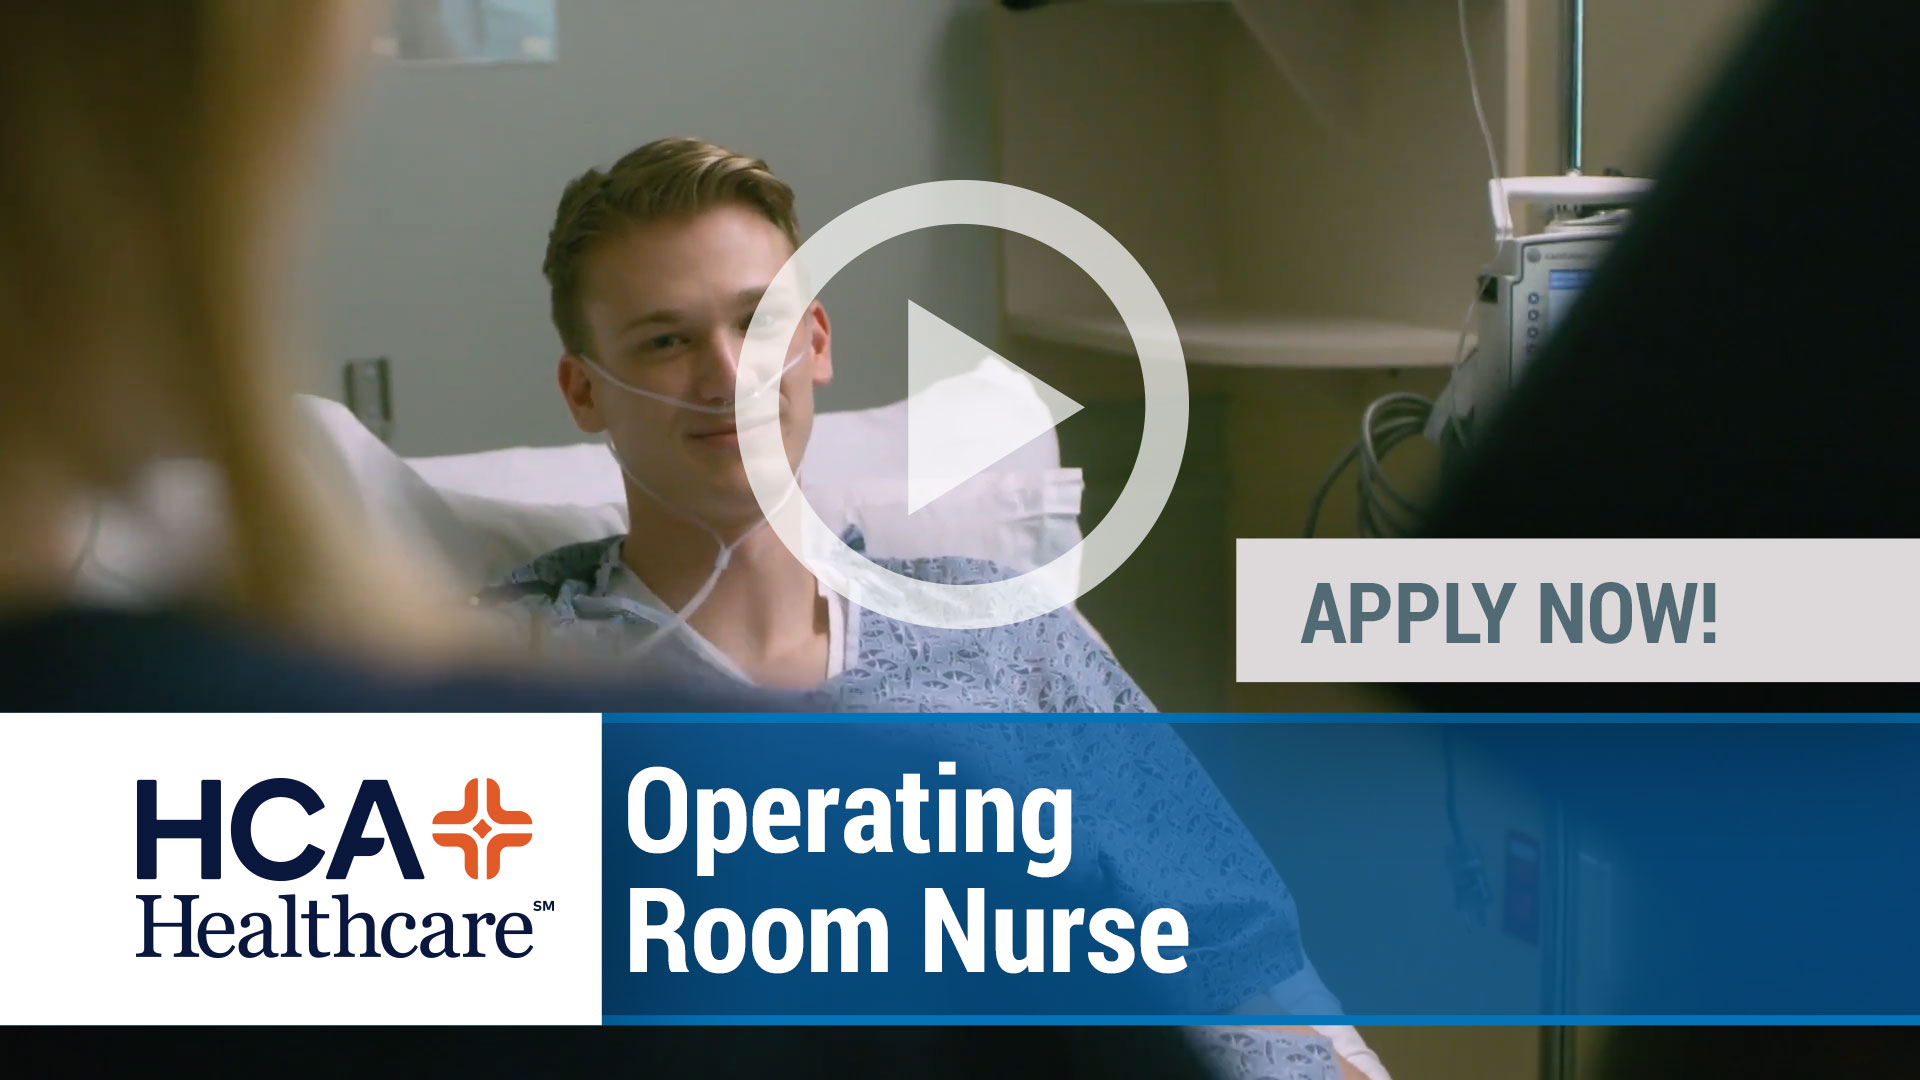 Watch our careers video for available job opening Operating Room Nurse in Fort Walton Beach, Florida